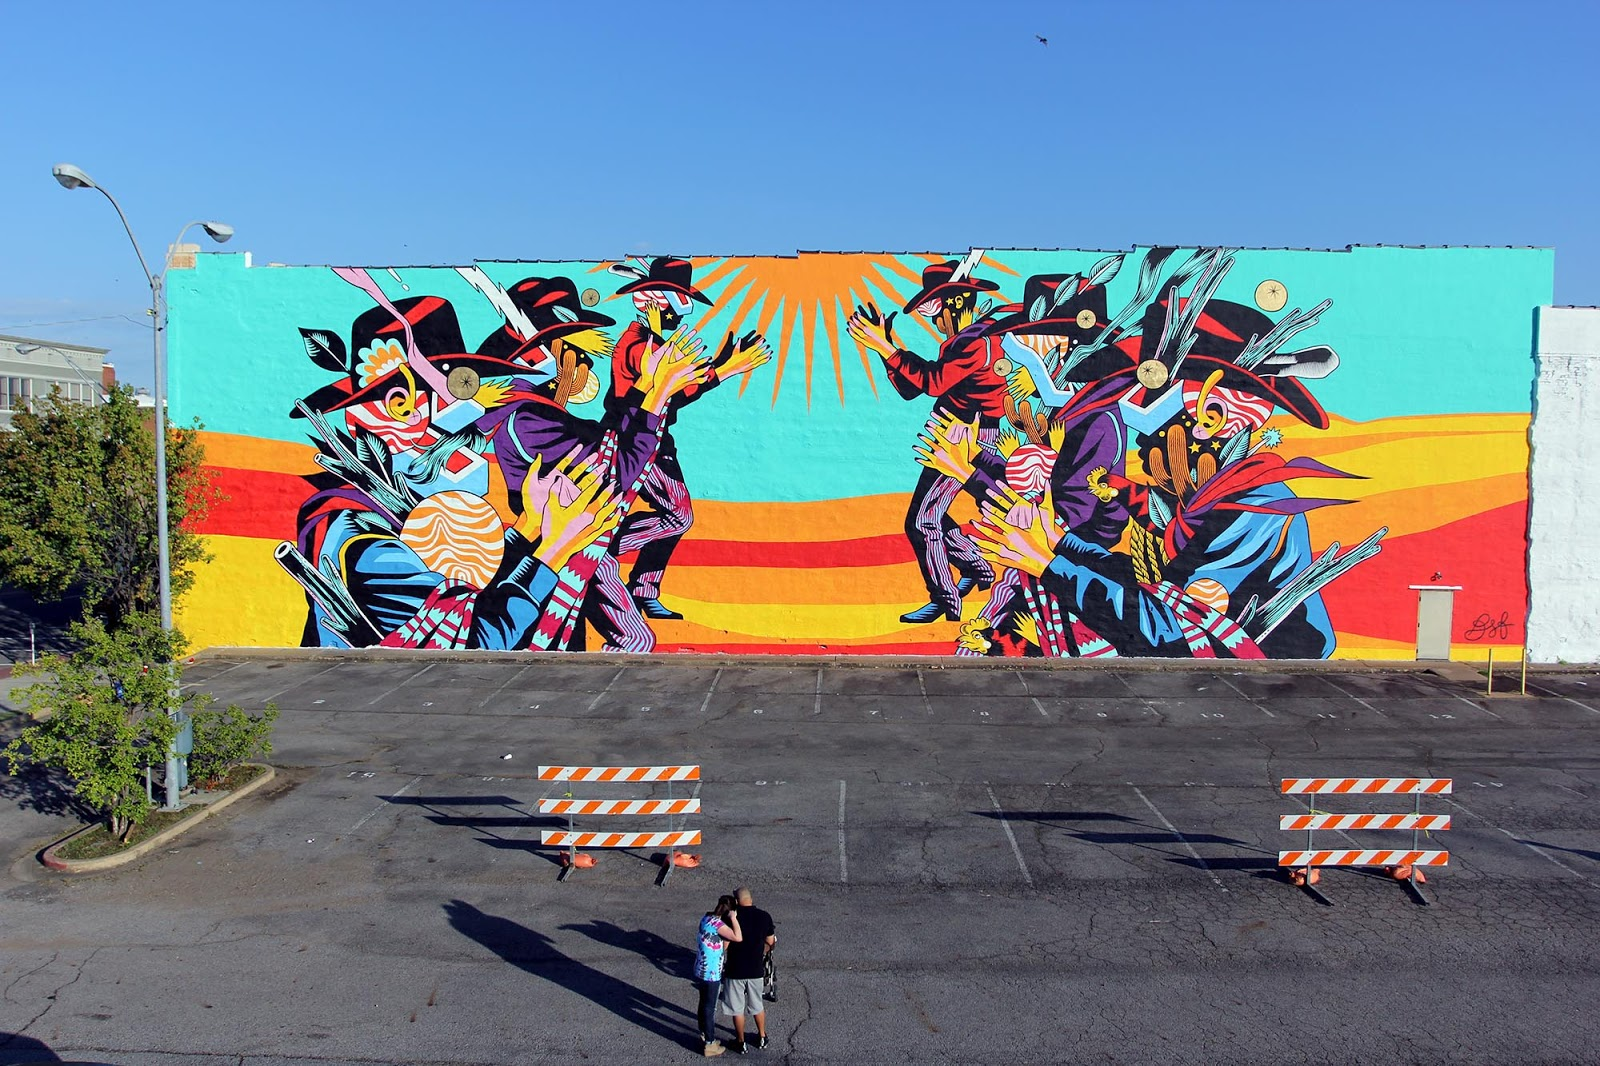 Unexpected 39 15 bicicleta sem freio paints catira a for 6 blocks from downtown mural